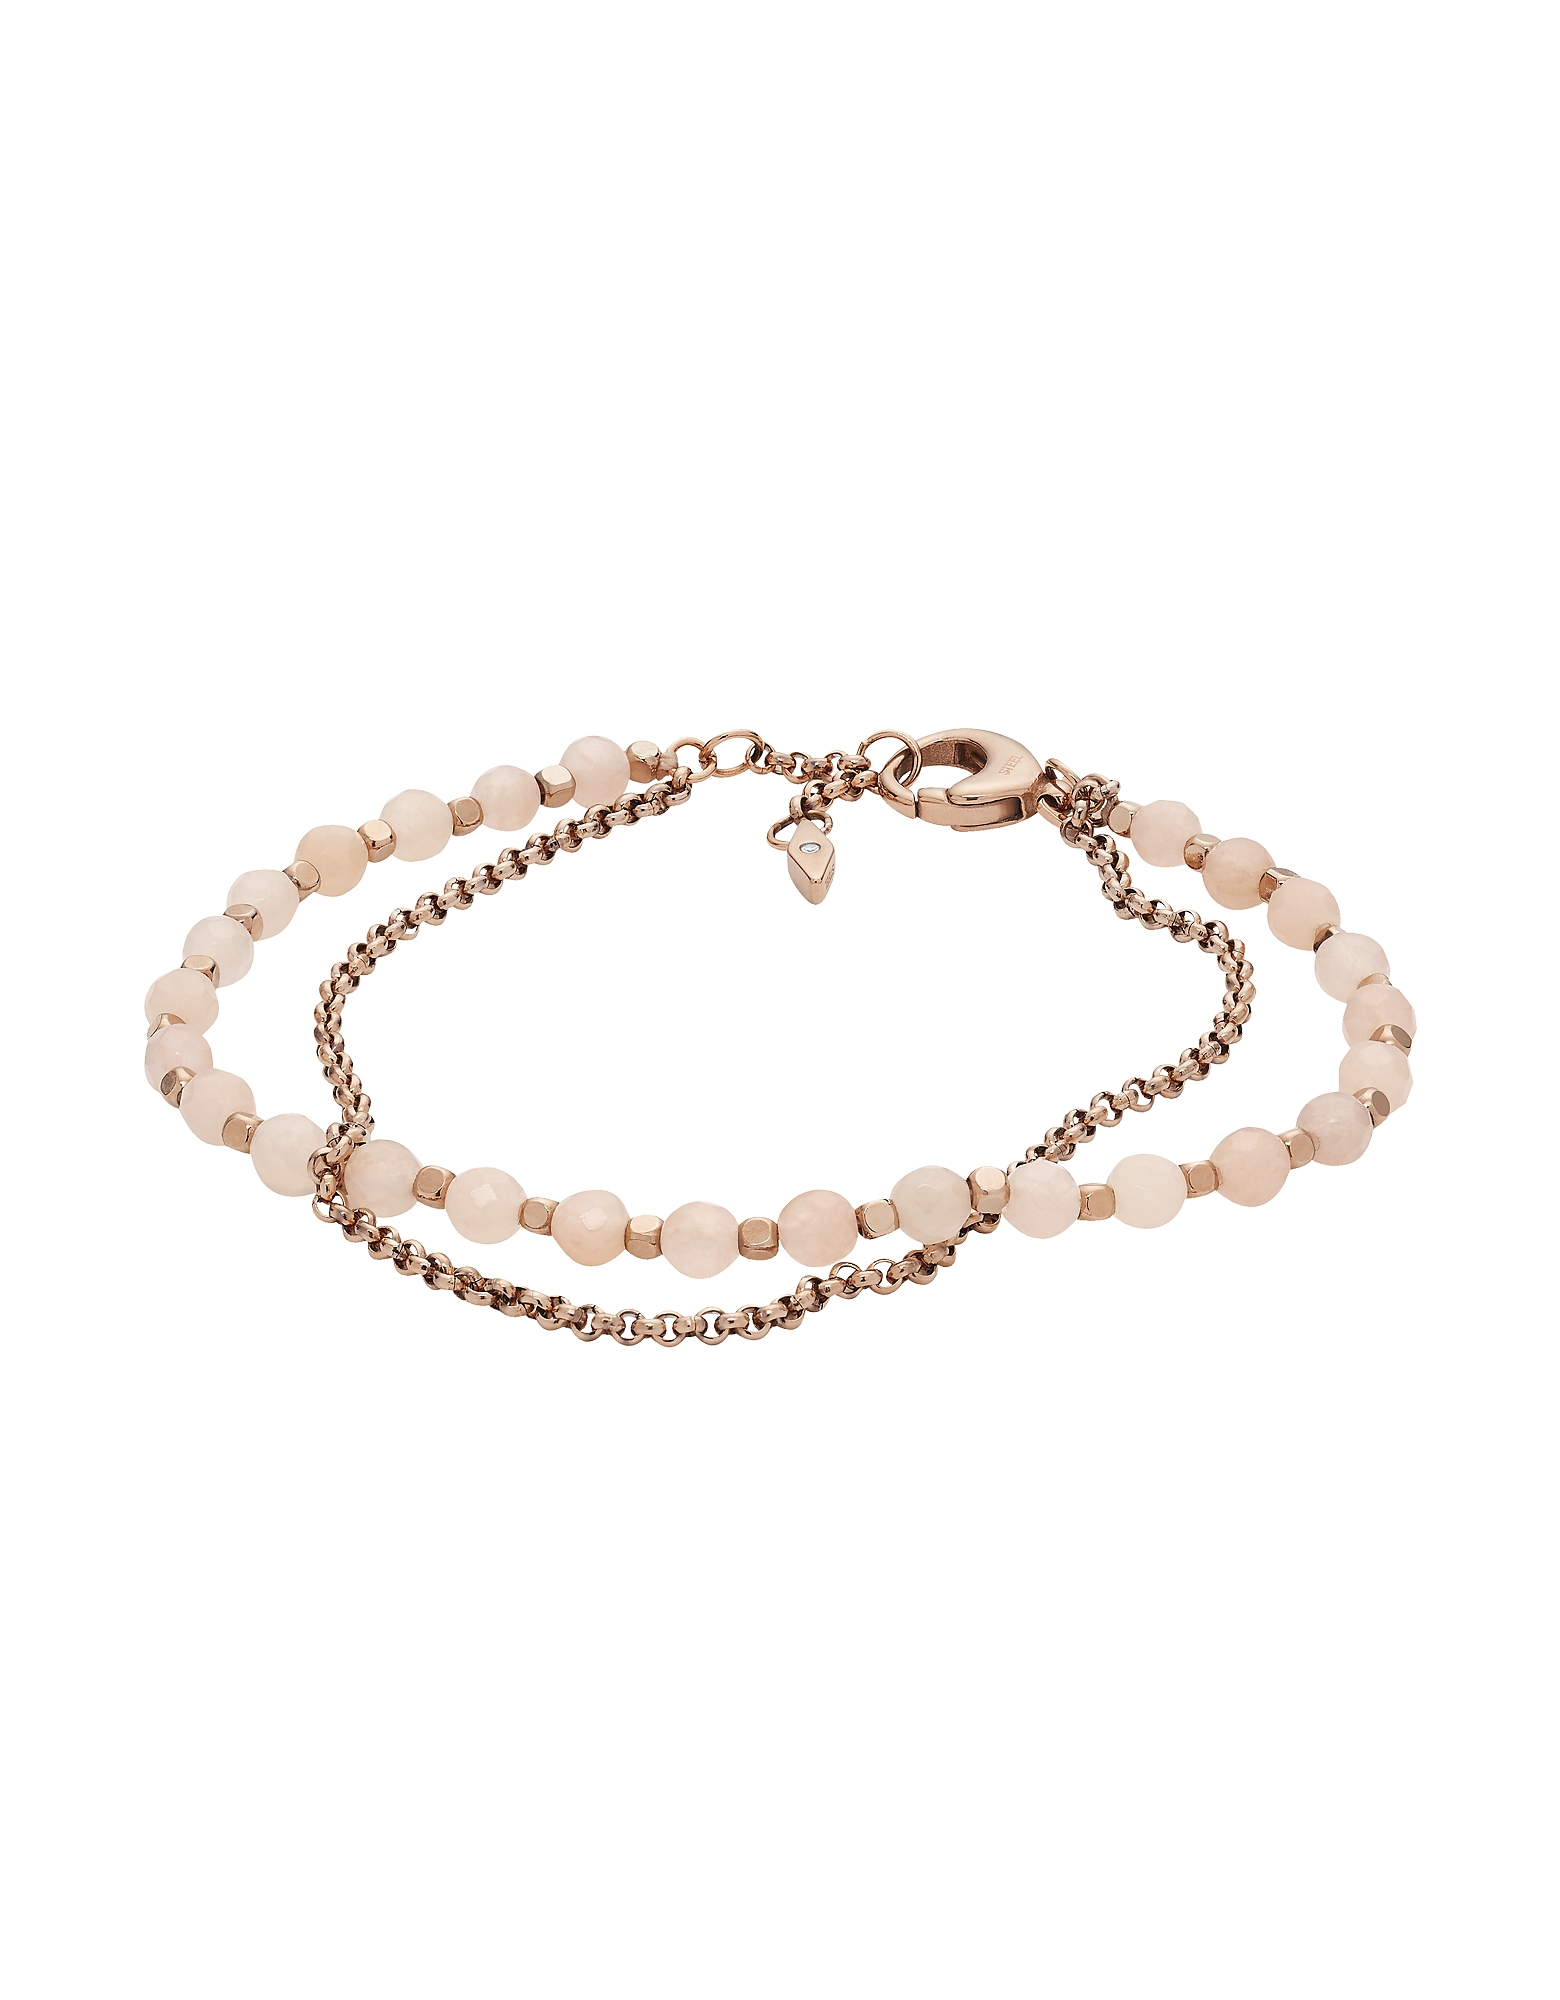 Pink Semi-Precious Double Chain Bracelet, is a stack-worthy essential with an ultra chic vibe. Featu